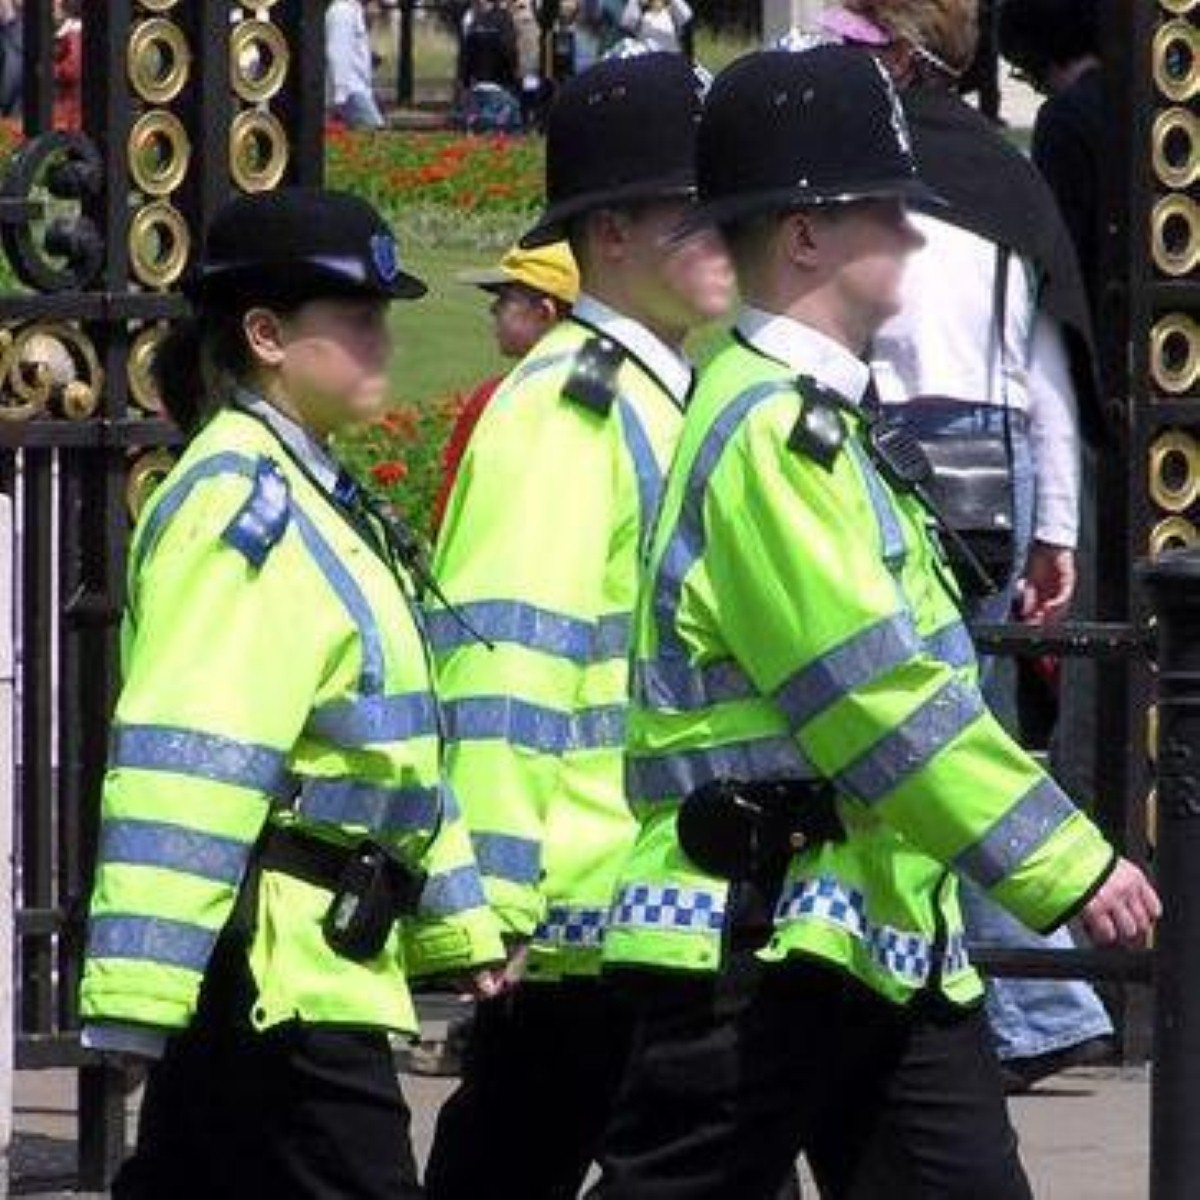 Underperforming: Police in need of reform